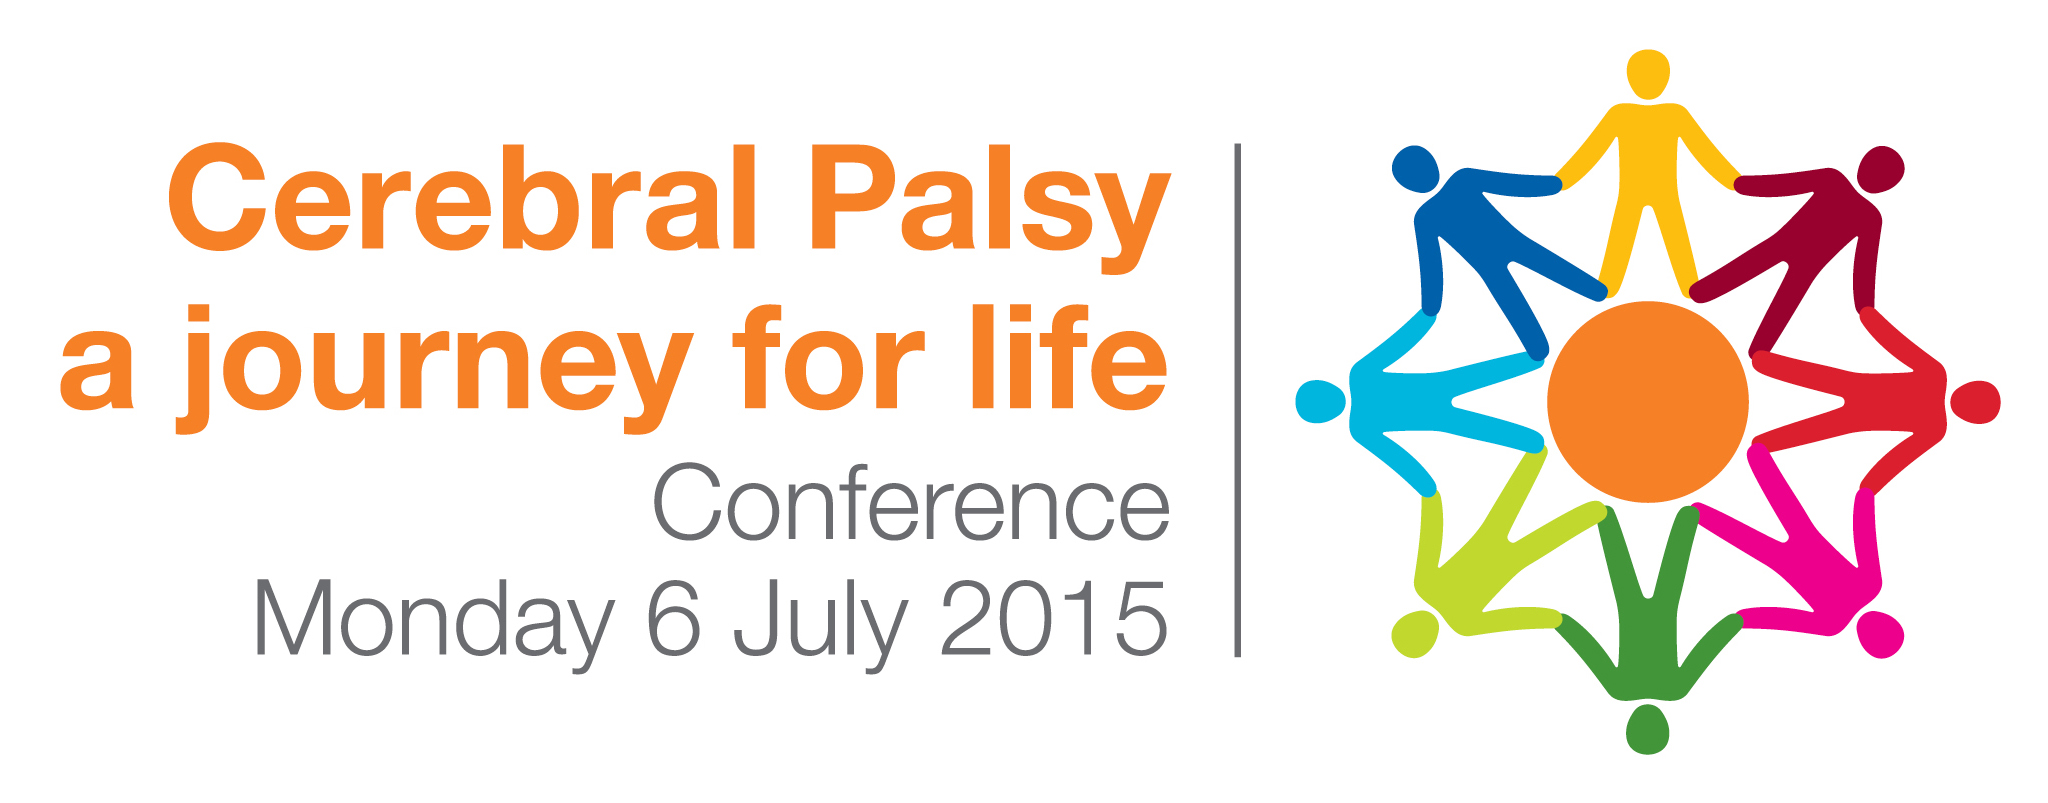 Cerebral Palsy Conference